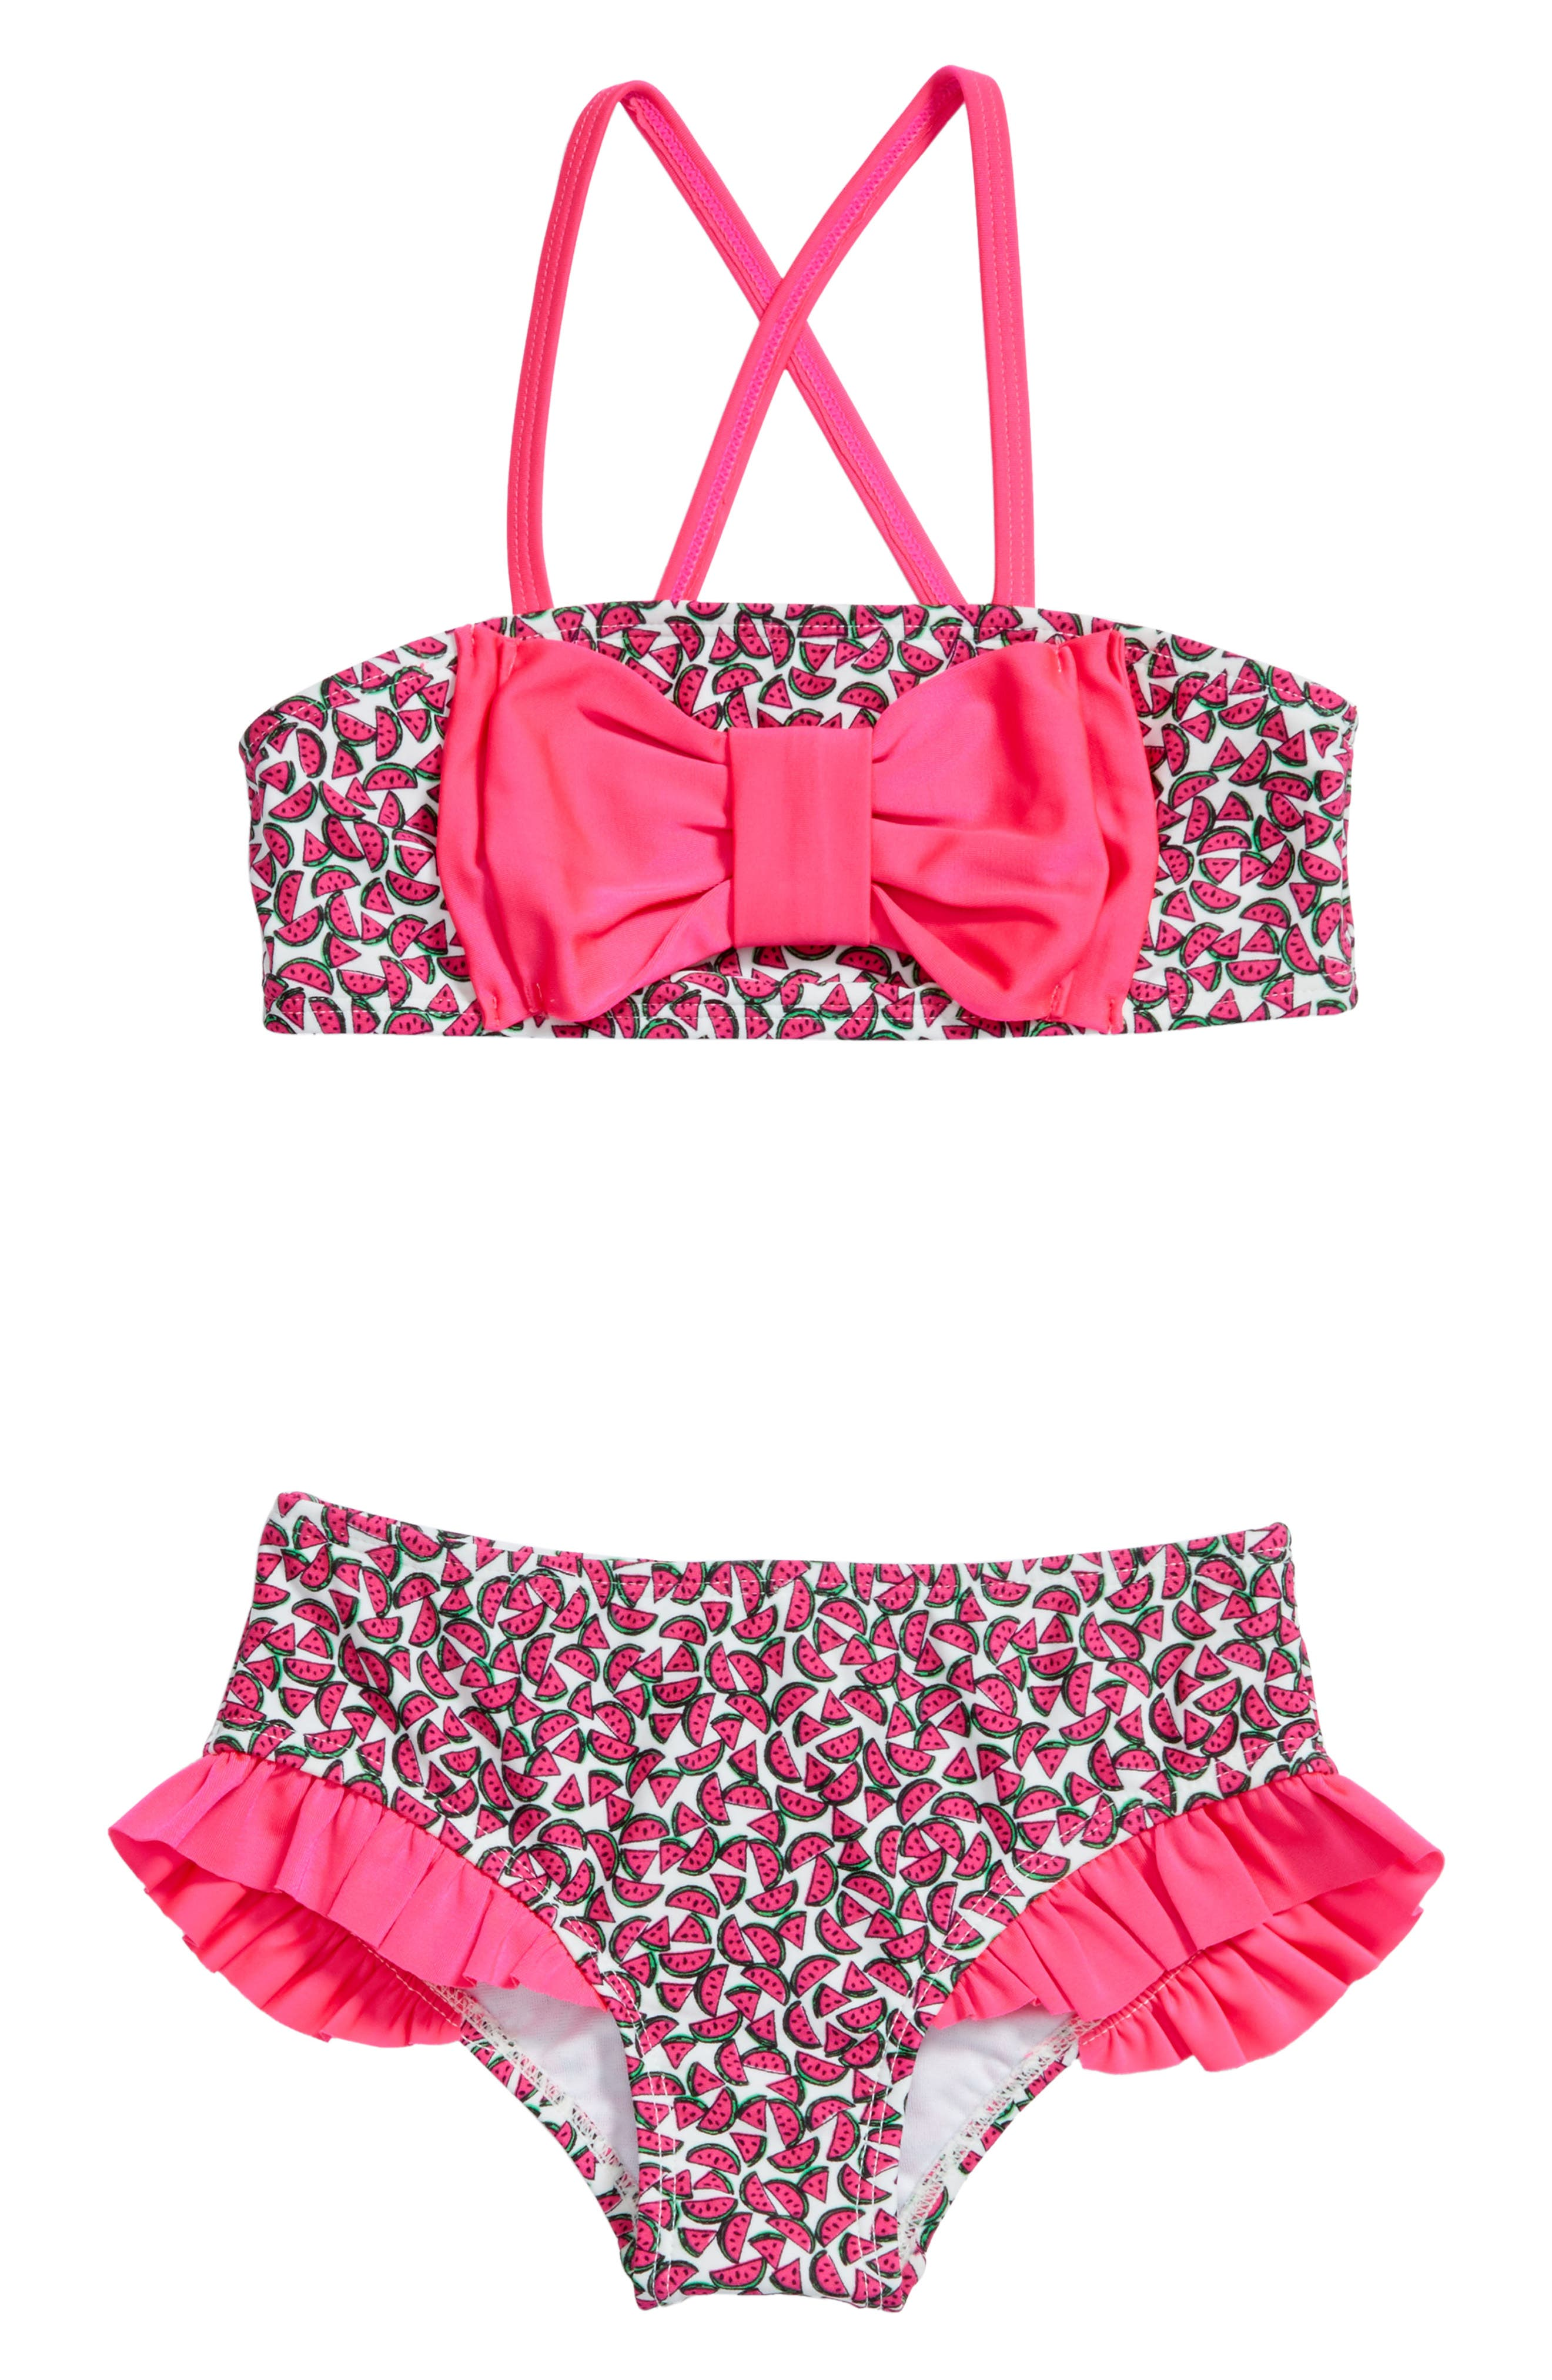 Main Image - Hula Star Watermelon Two-Piece Swimsuit (Toddler Girls & Little Girls)